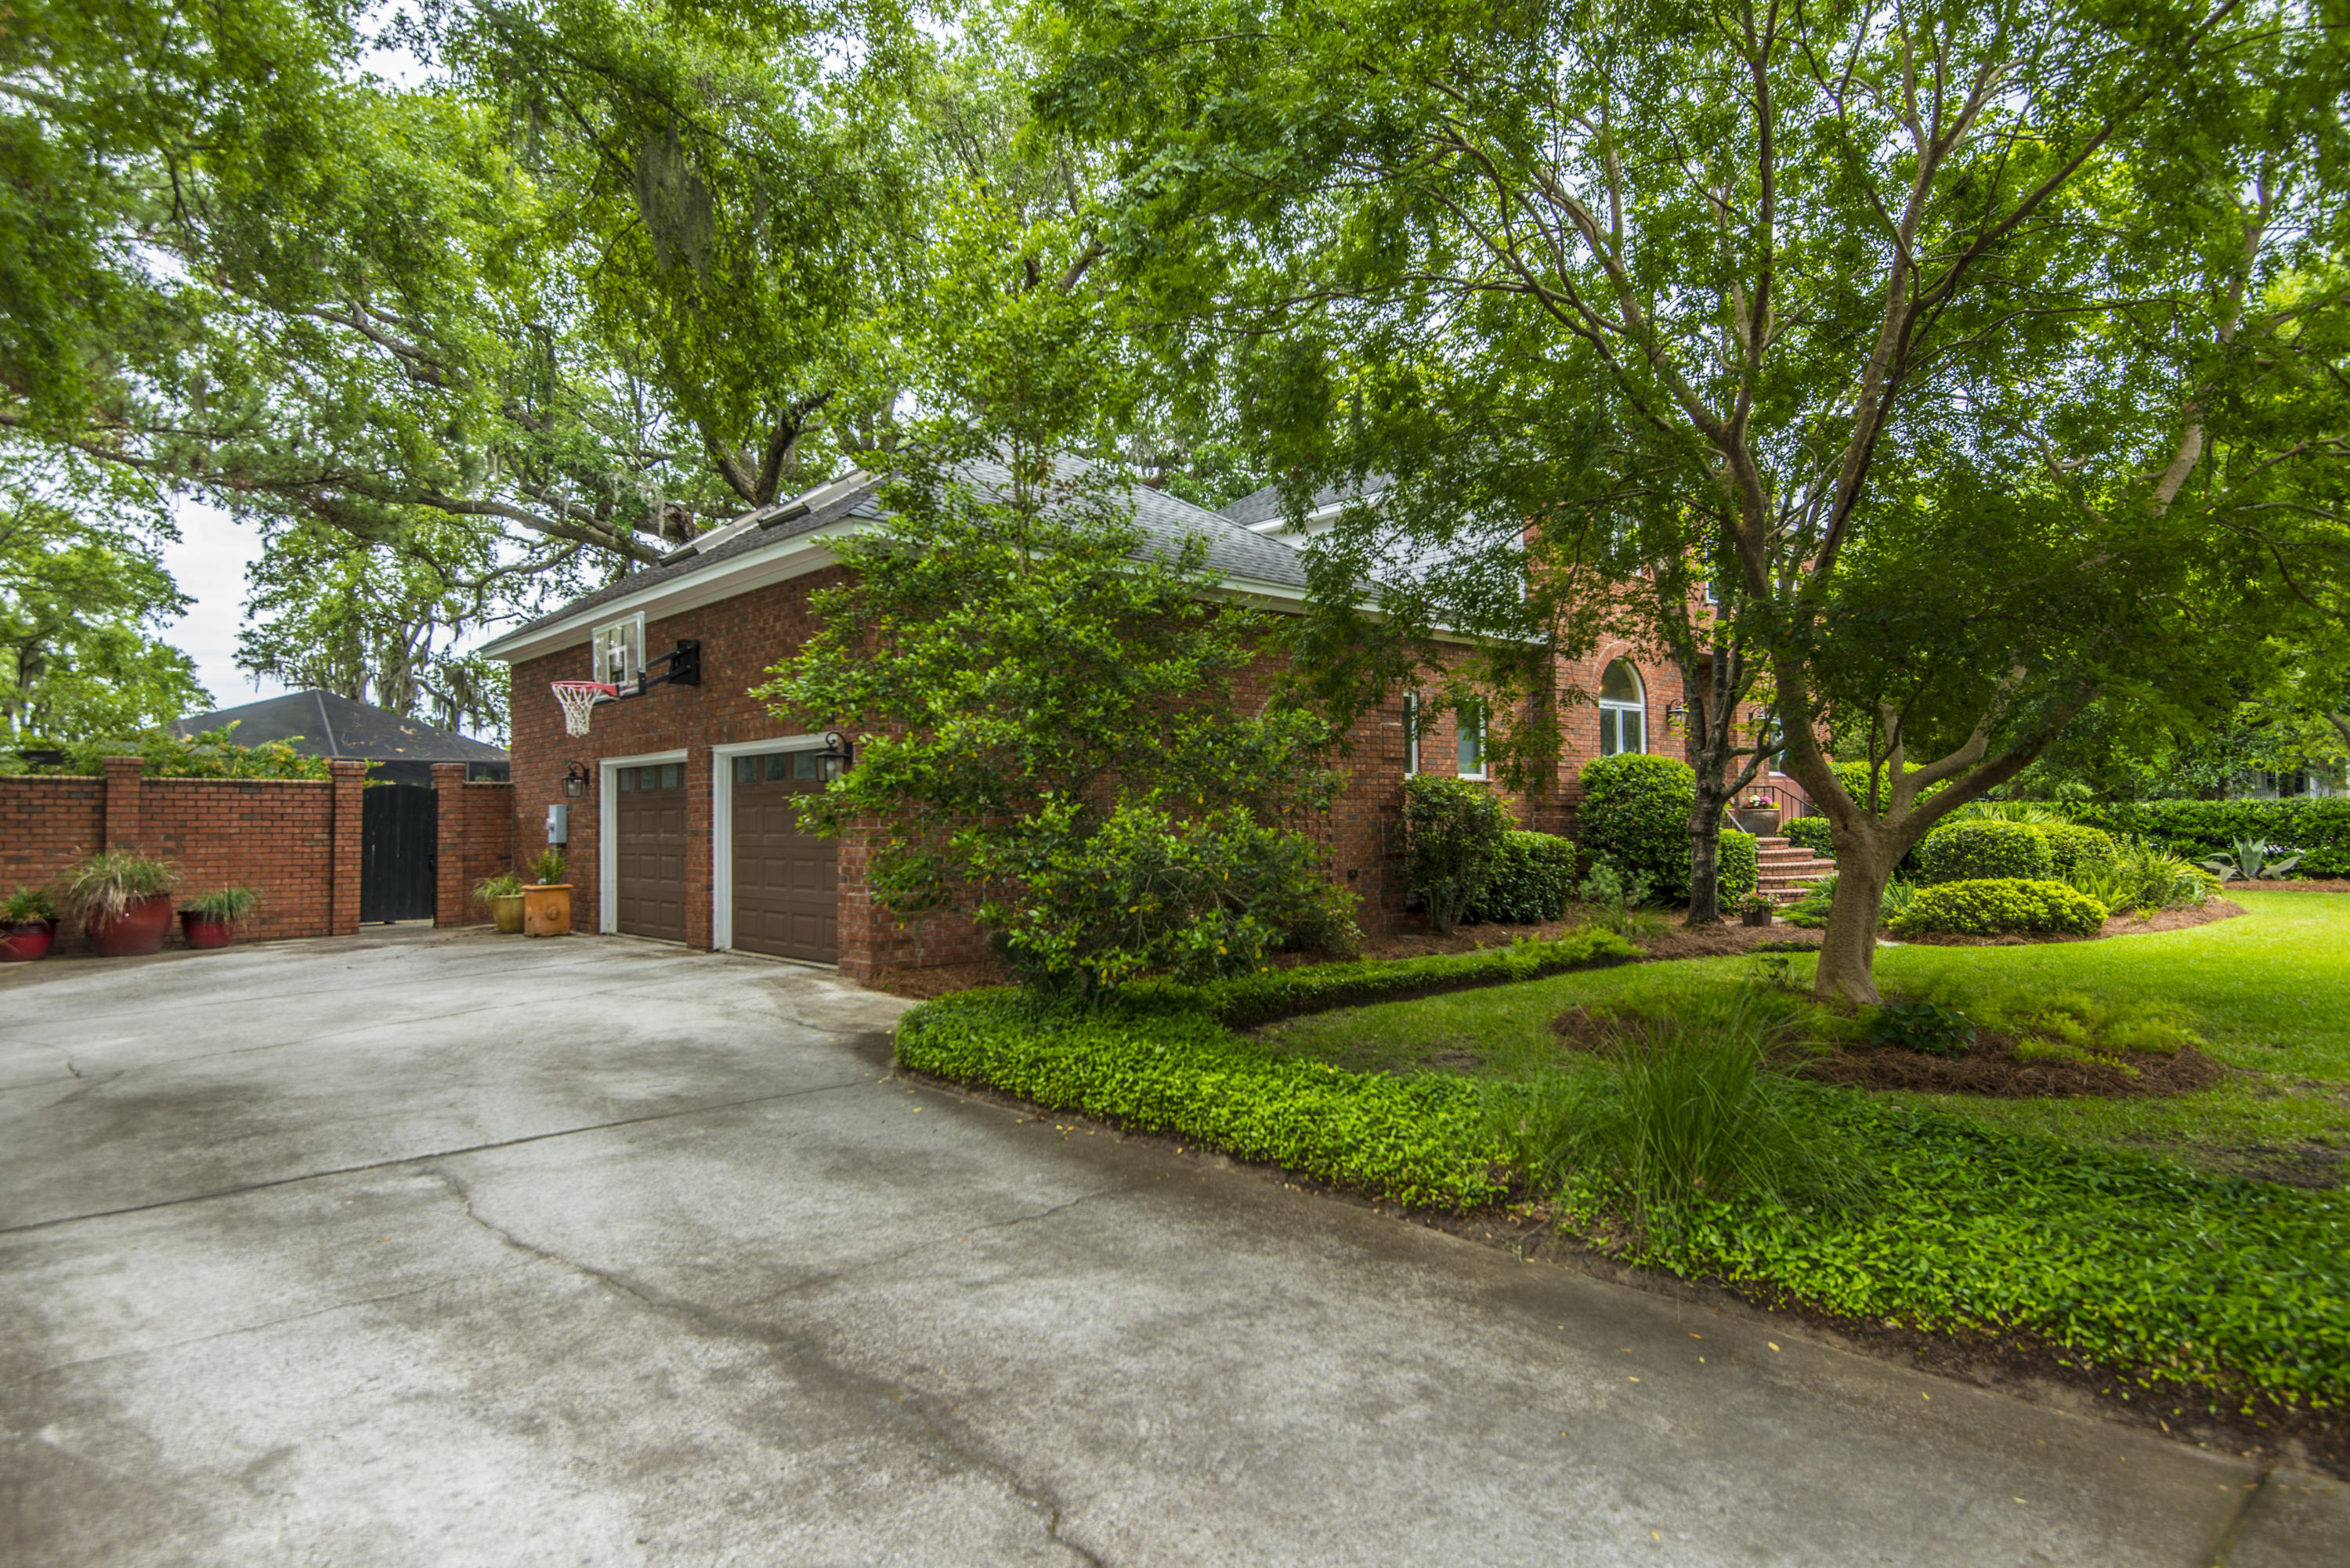 Stiles Point Plantation Homes For Sale - 921 Cotton House, Charleston, SC - 46